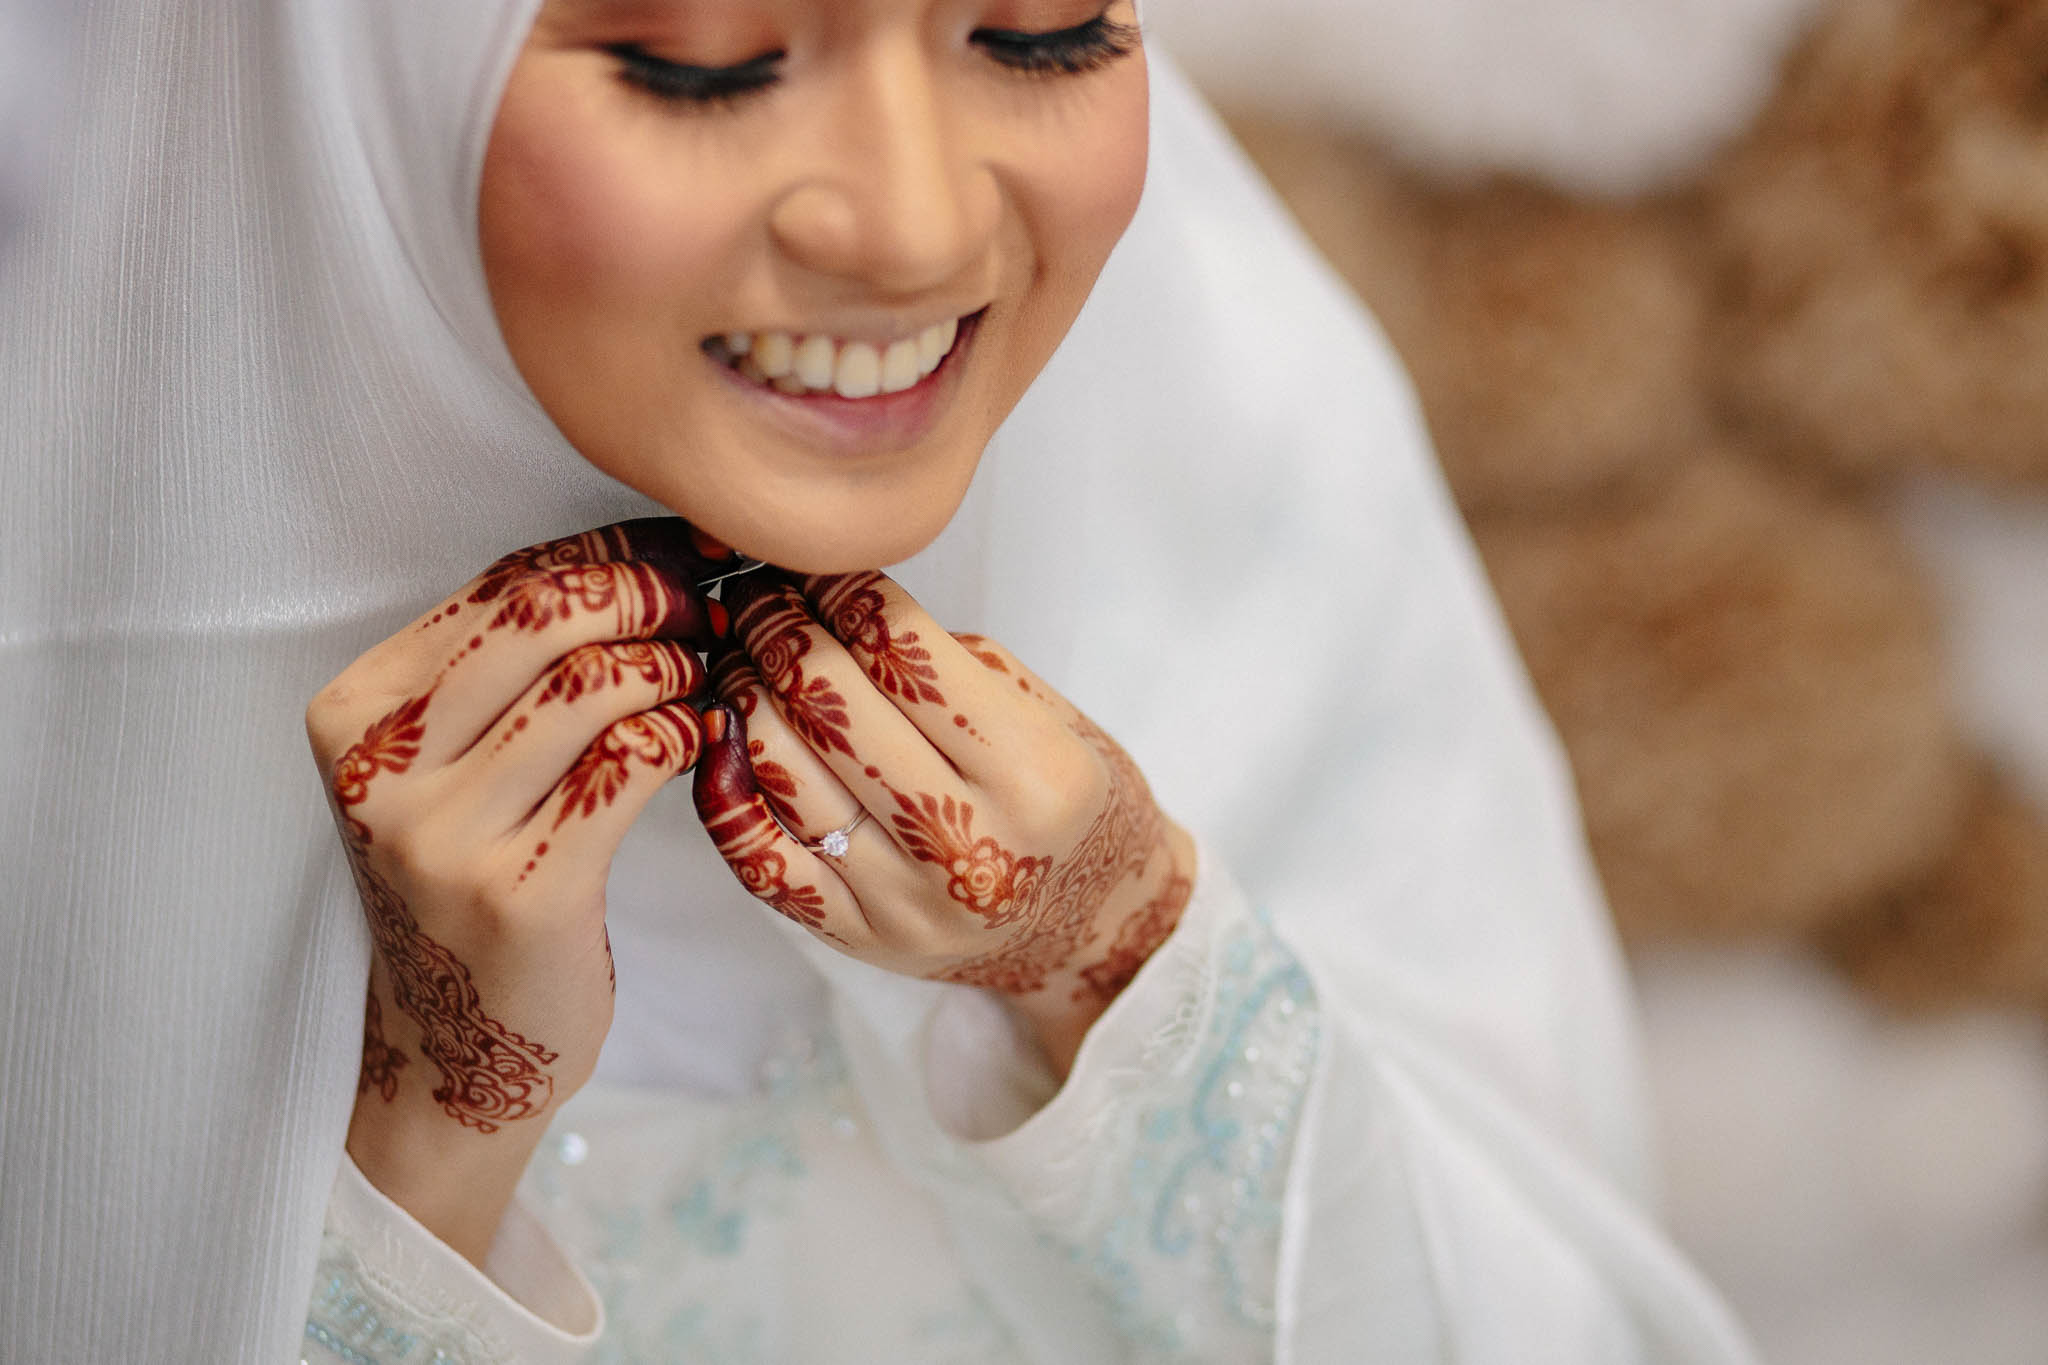 singapore-wedding-photographer-we-made-these-2016-selects-032.jpg